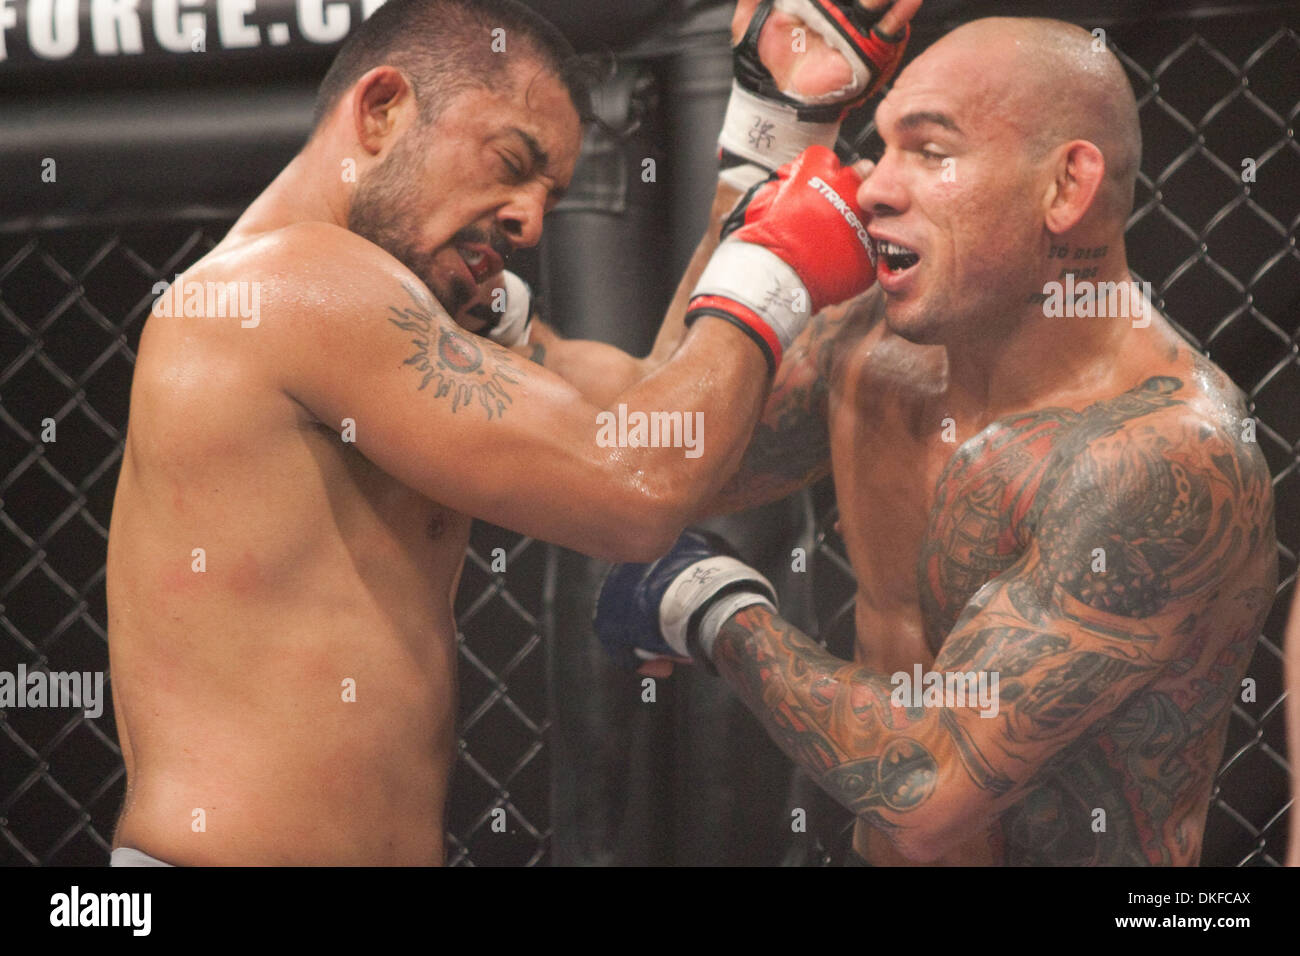 Jun 19, 2009 - Kent, Washington, USA - Strikeforce MMA fighting from Showare Center in Kent, WA. 'SMOKIN' JOEY VILLASENOR (L) vs. EVANGELISTA 'CYBORG' SANTOS. (Credit Image: © Andrew Fredrickson/Southcreek Global/ZUMA Press) - Stock Image